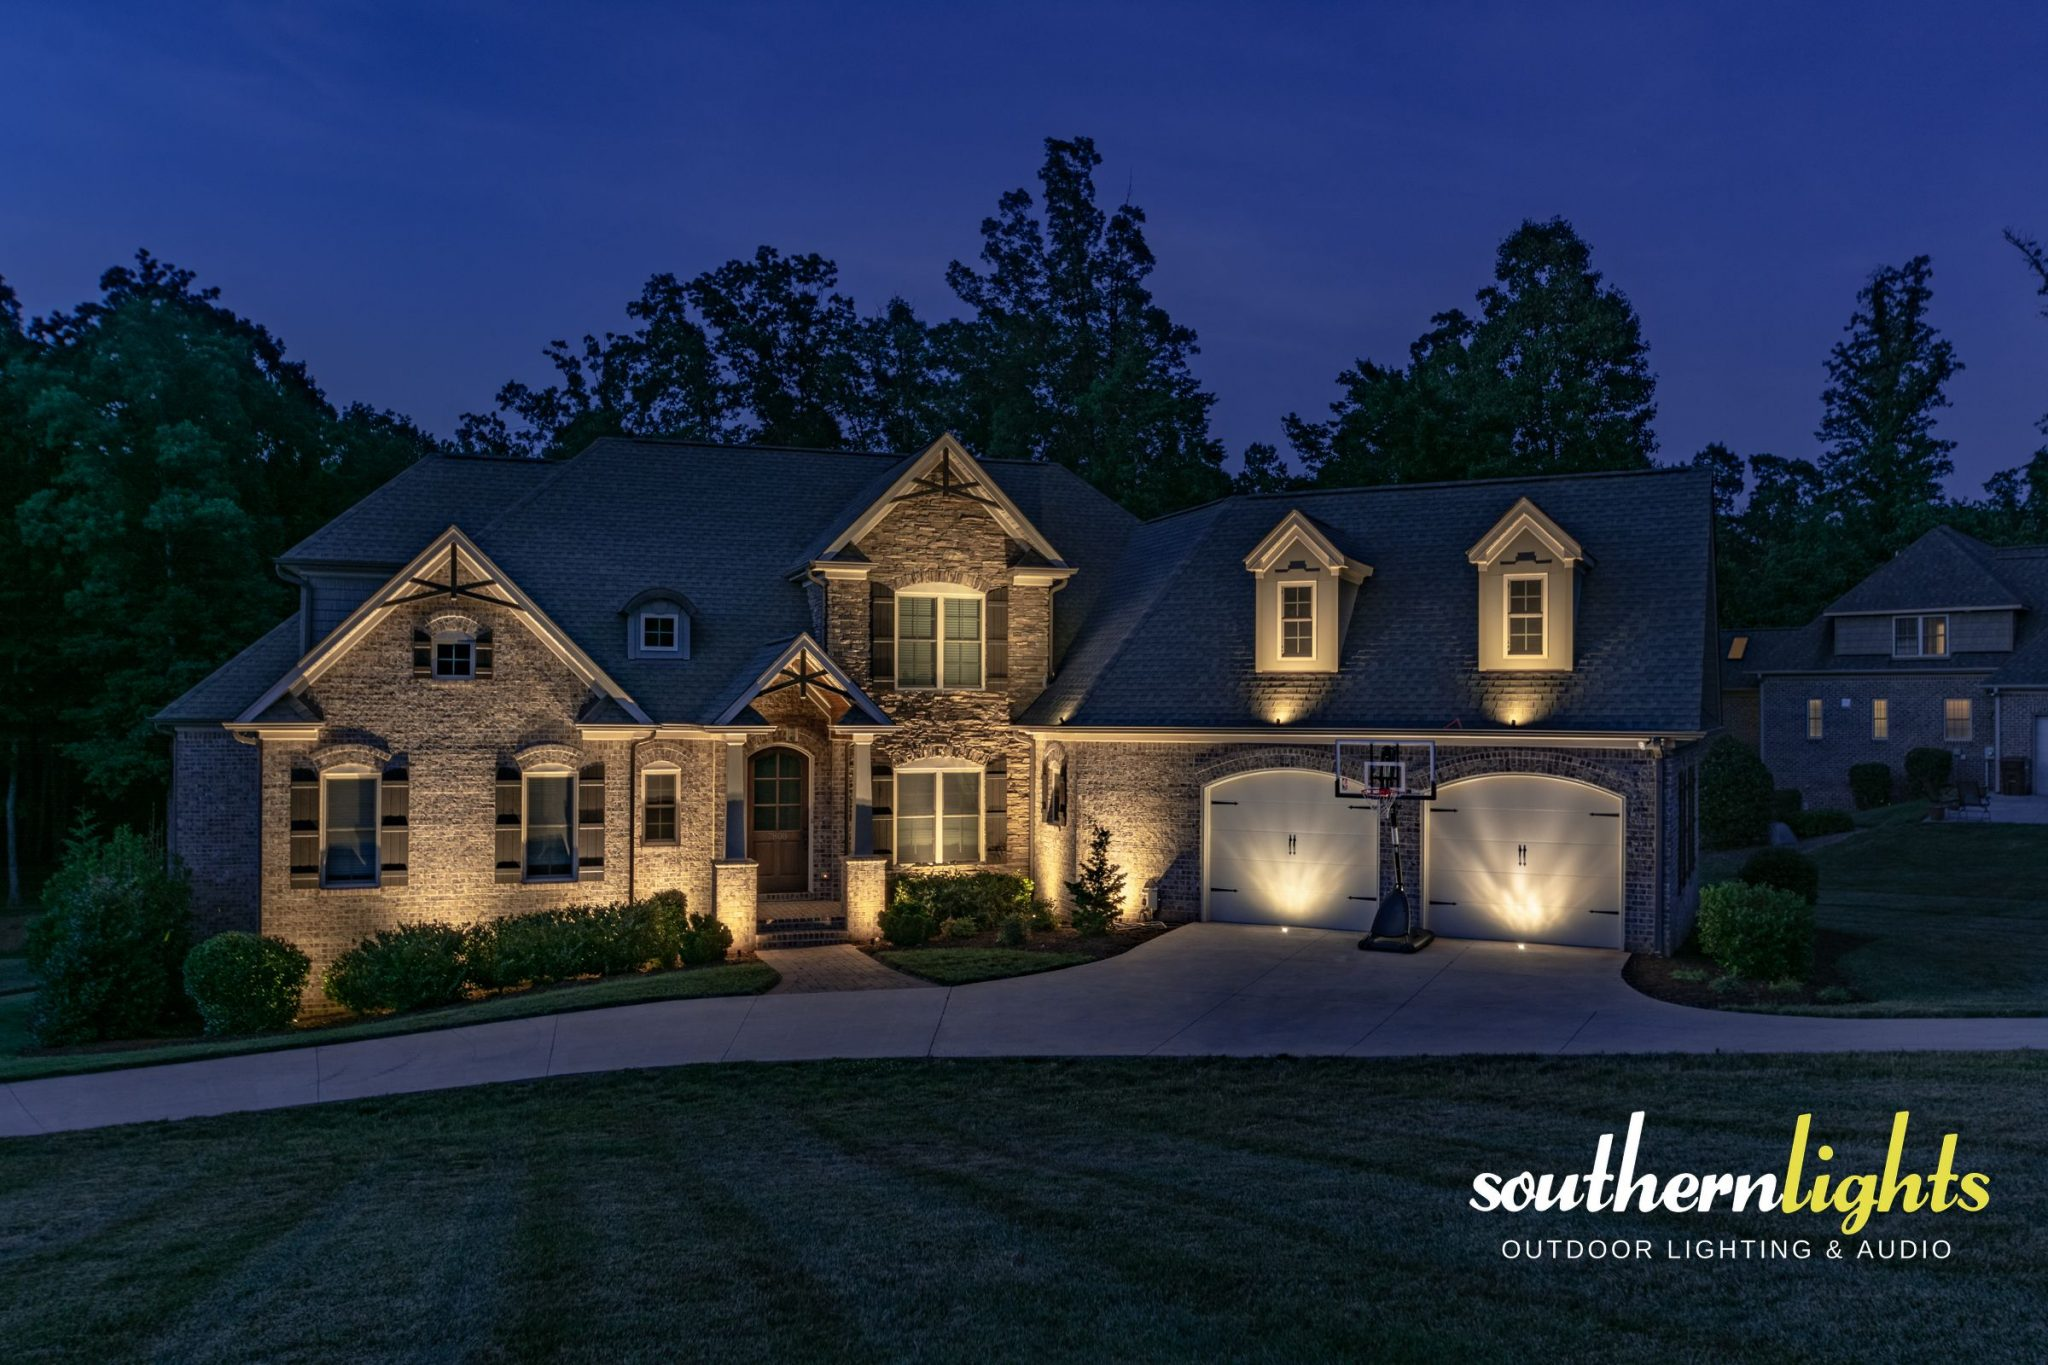 Outdoor Architectural Lighting Design